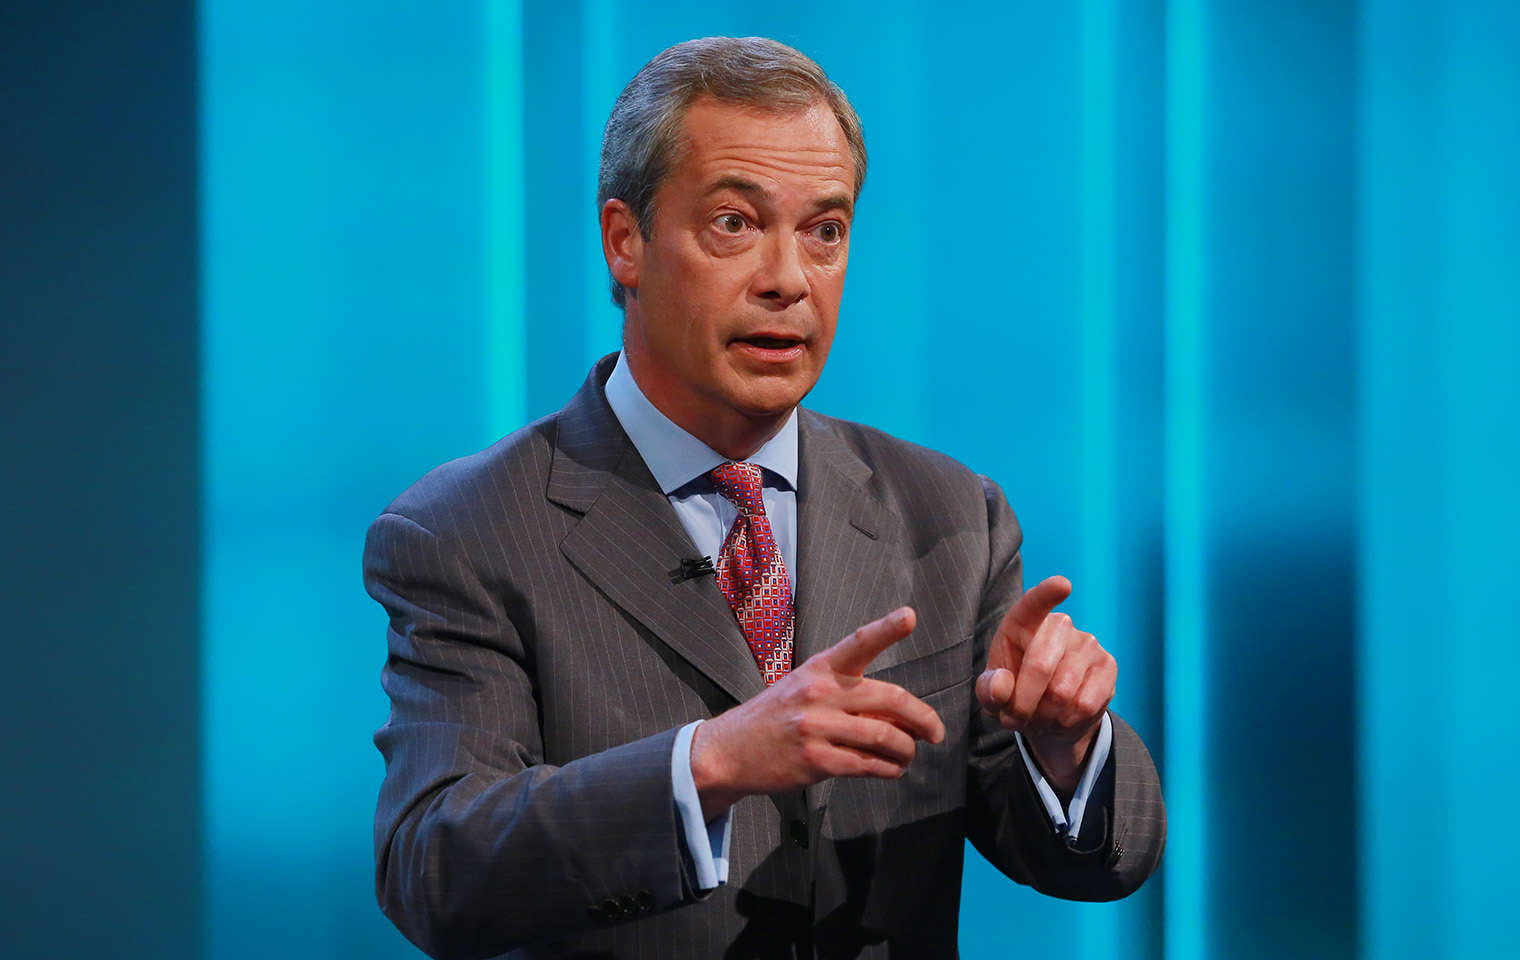 12258 1jbxtgs Nigel Farage Calls Himself A Victim When Talking About Jo Cox And Refugees